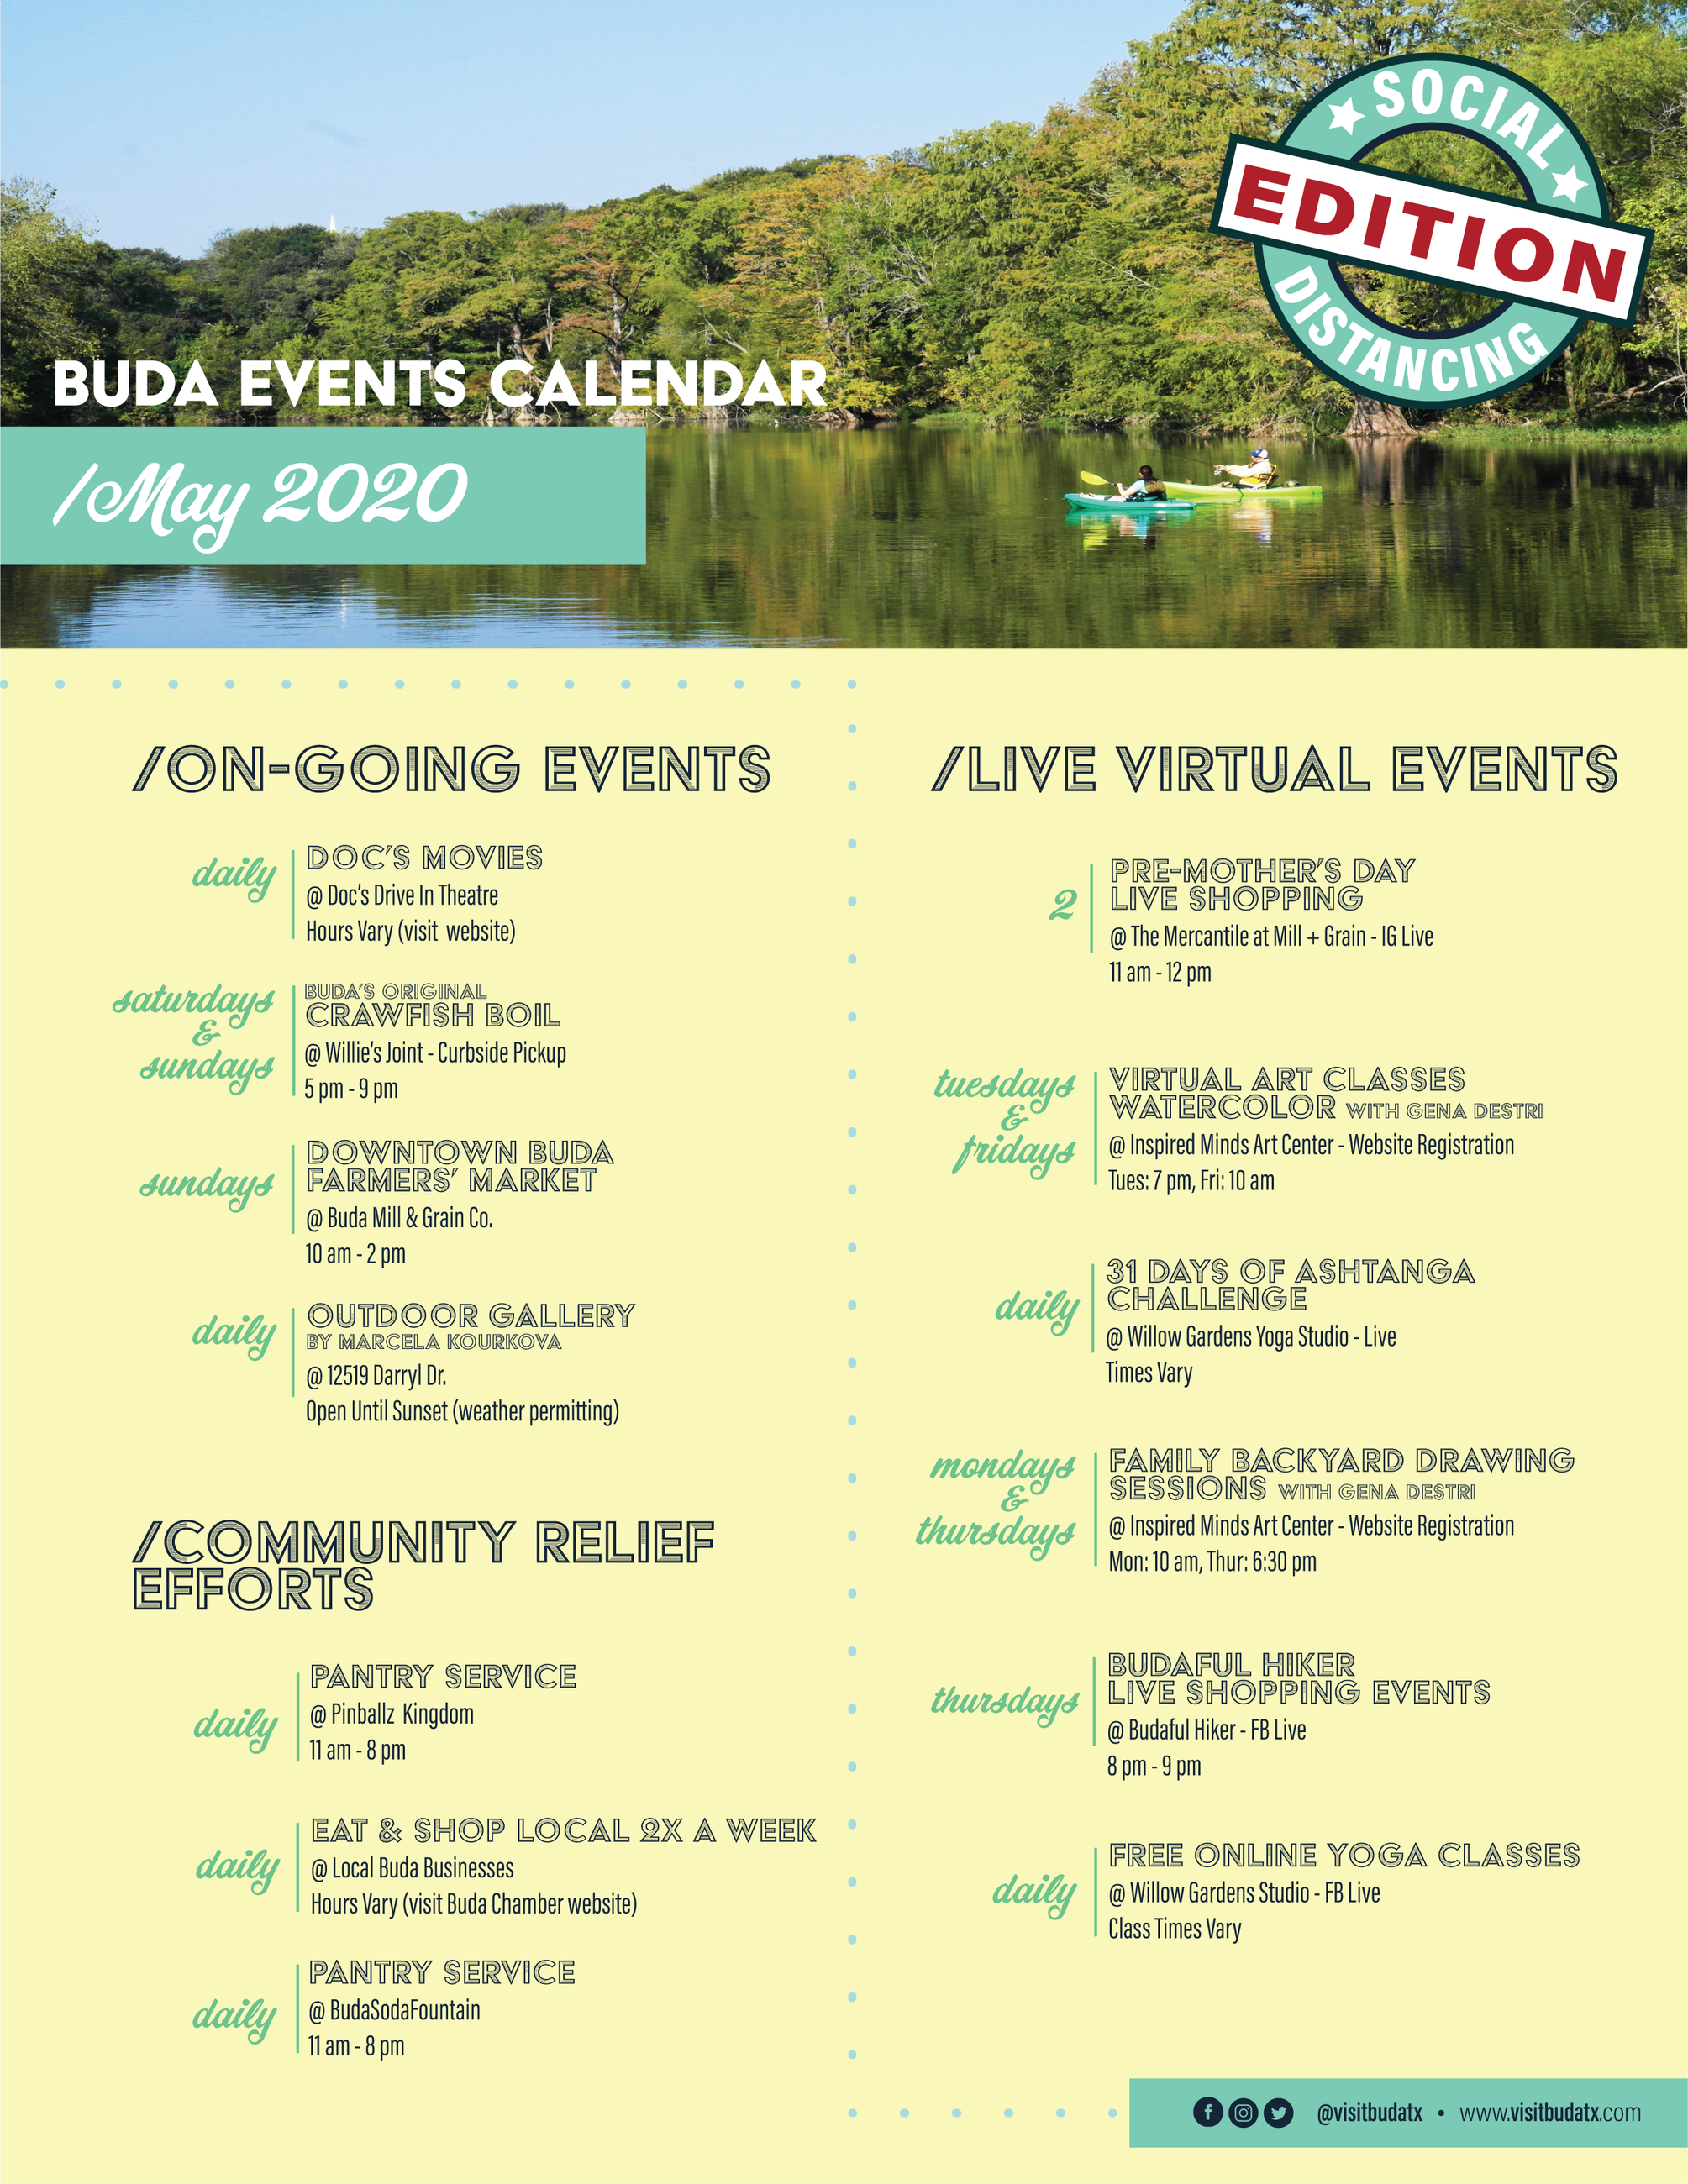 May 2020 Calendar of Events in Buda, TX